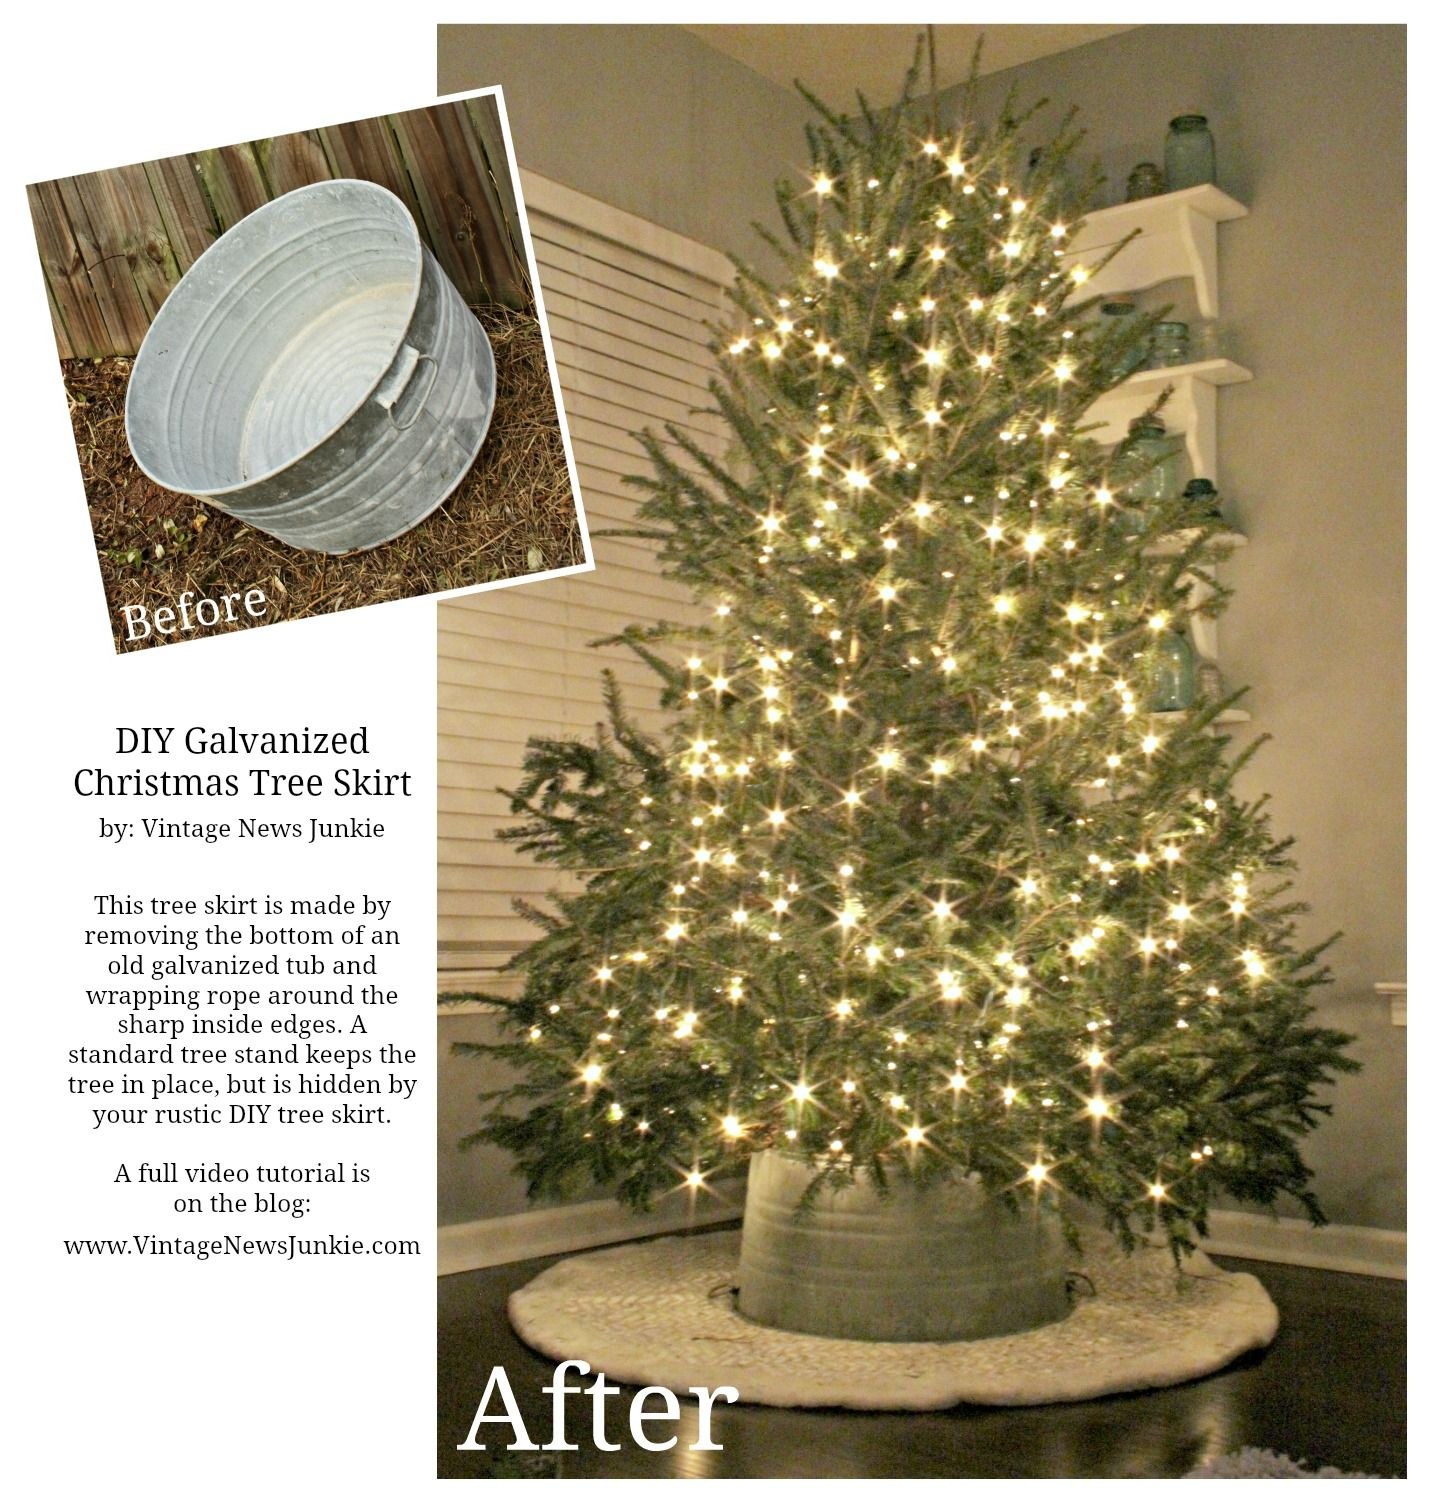 how to make a tree skirt out of a galvanized tub crate barrel inspired - Rustic Christmas Tree Skirt